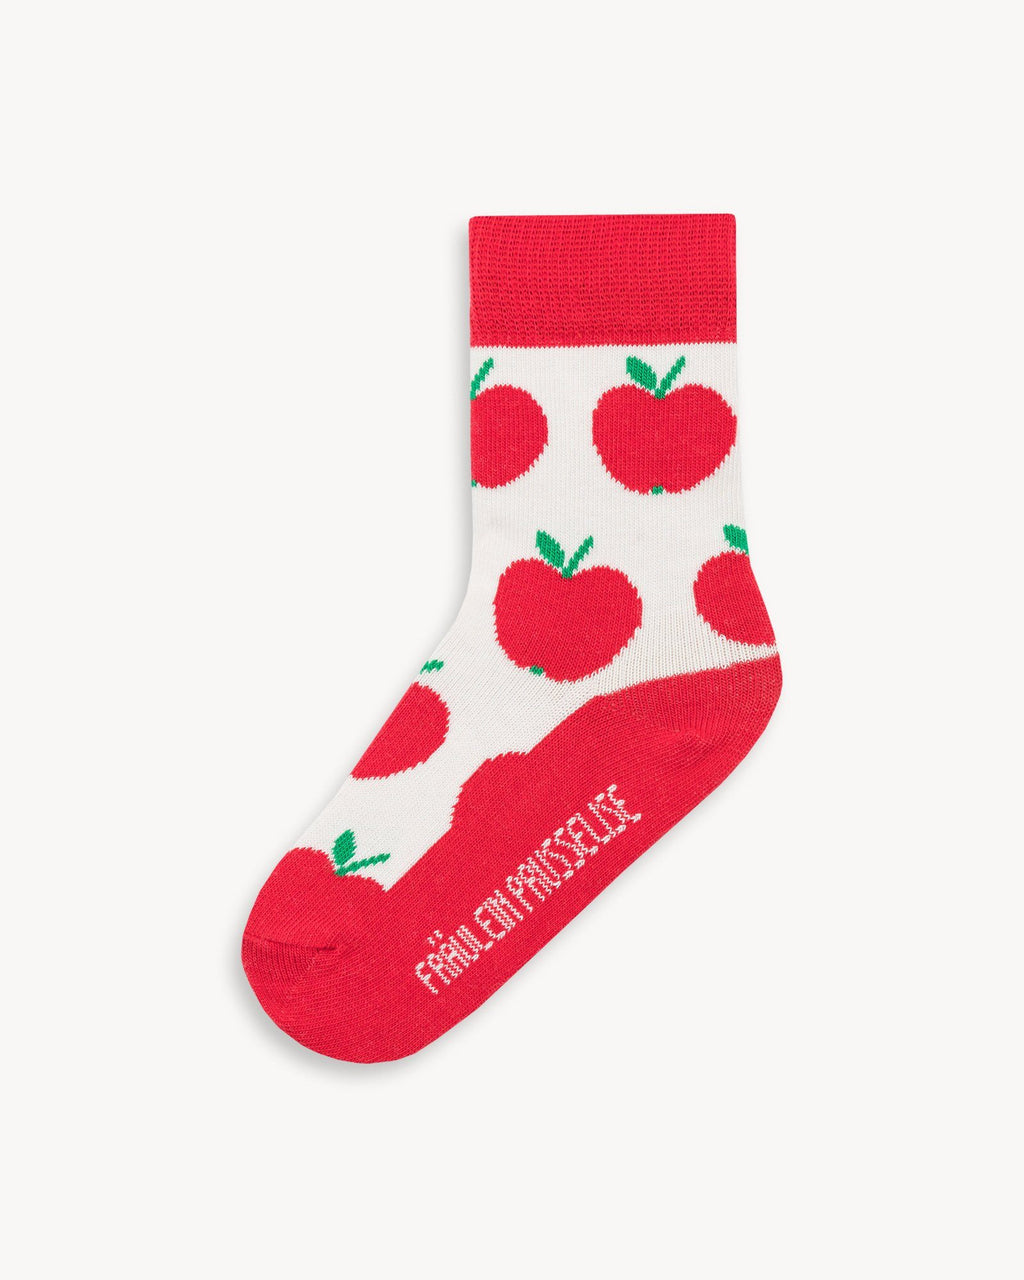 variant_3 | EN Red Socks with Print Kids | DE Rote Socken mit Print Kinder